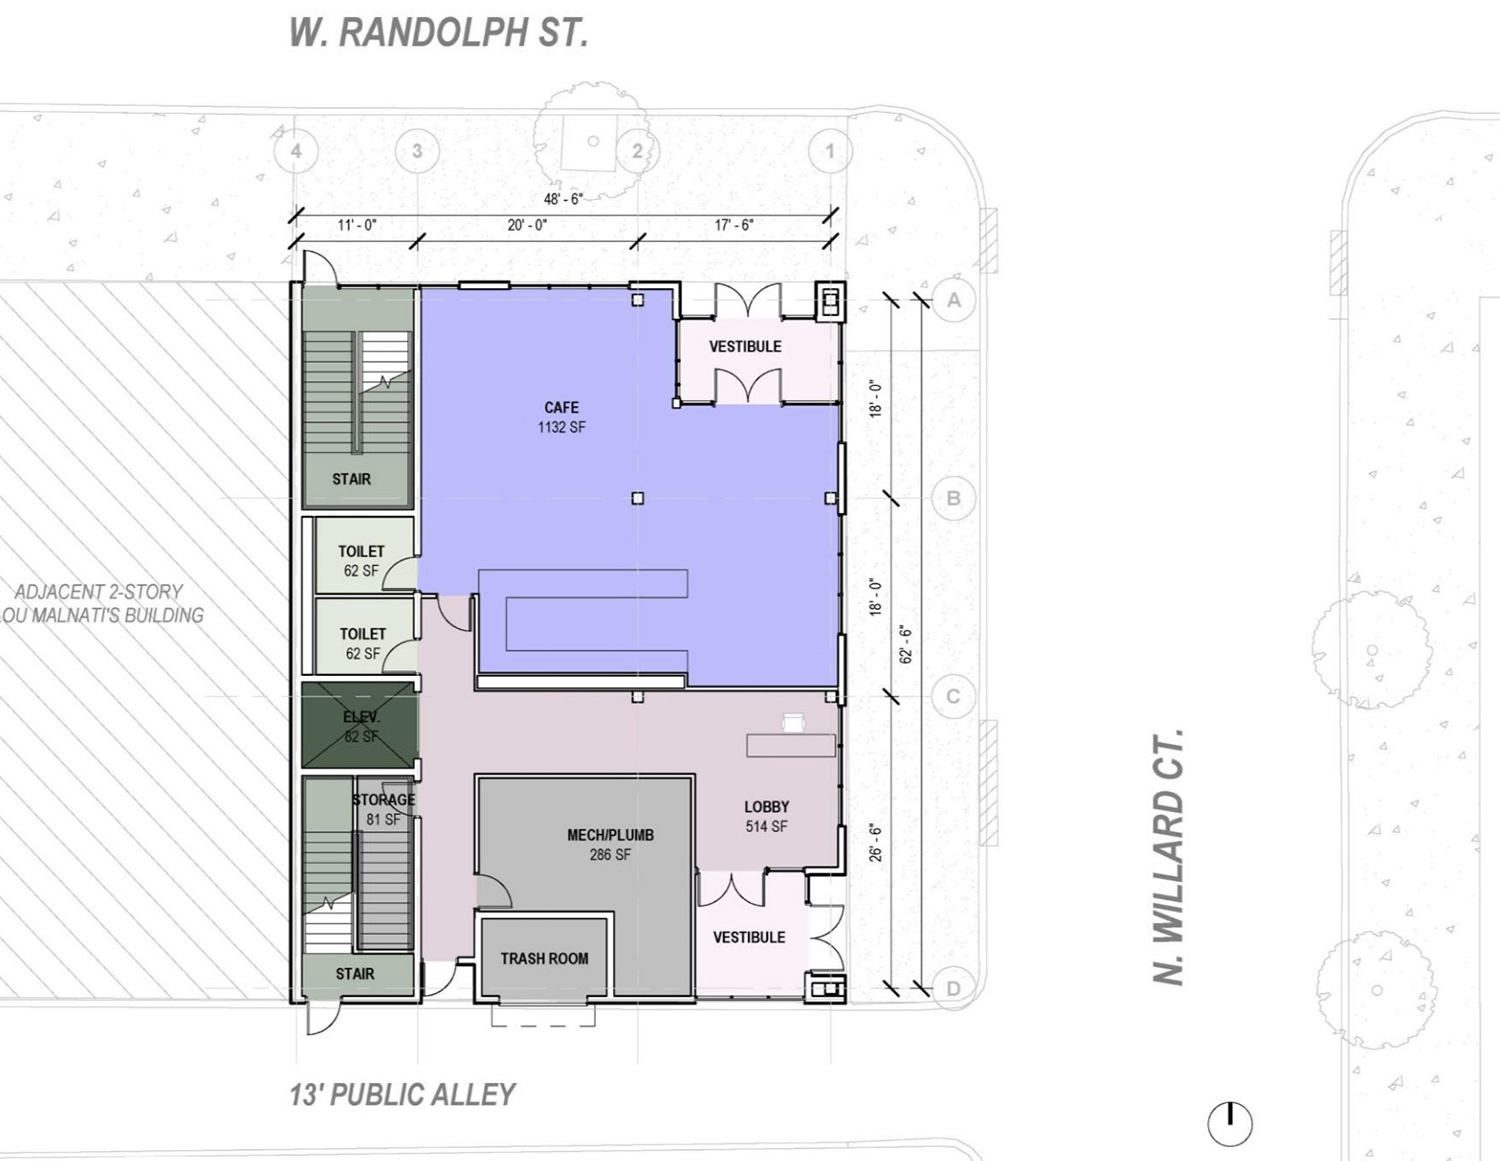 Site Plan for 1229 W Randolph Street. Drawing by JGMA